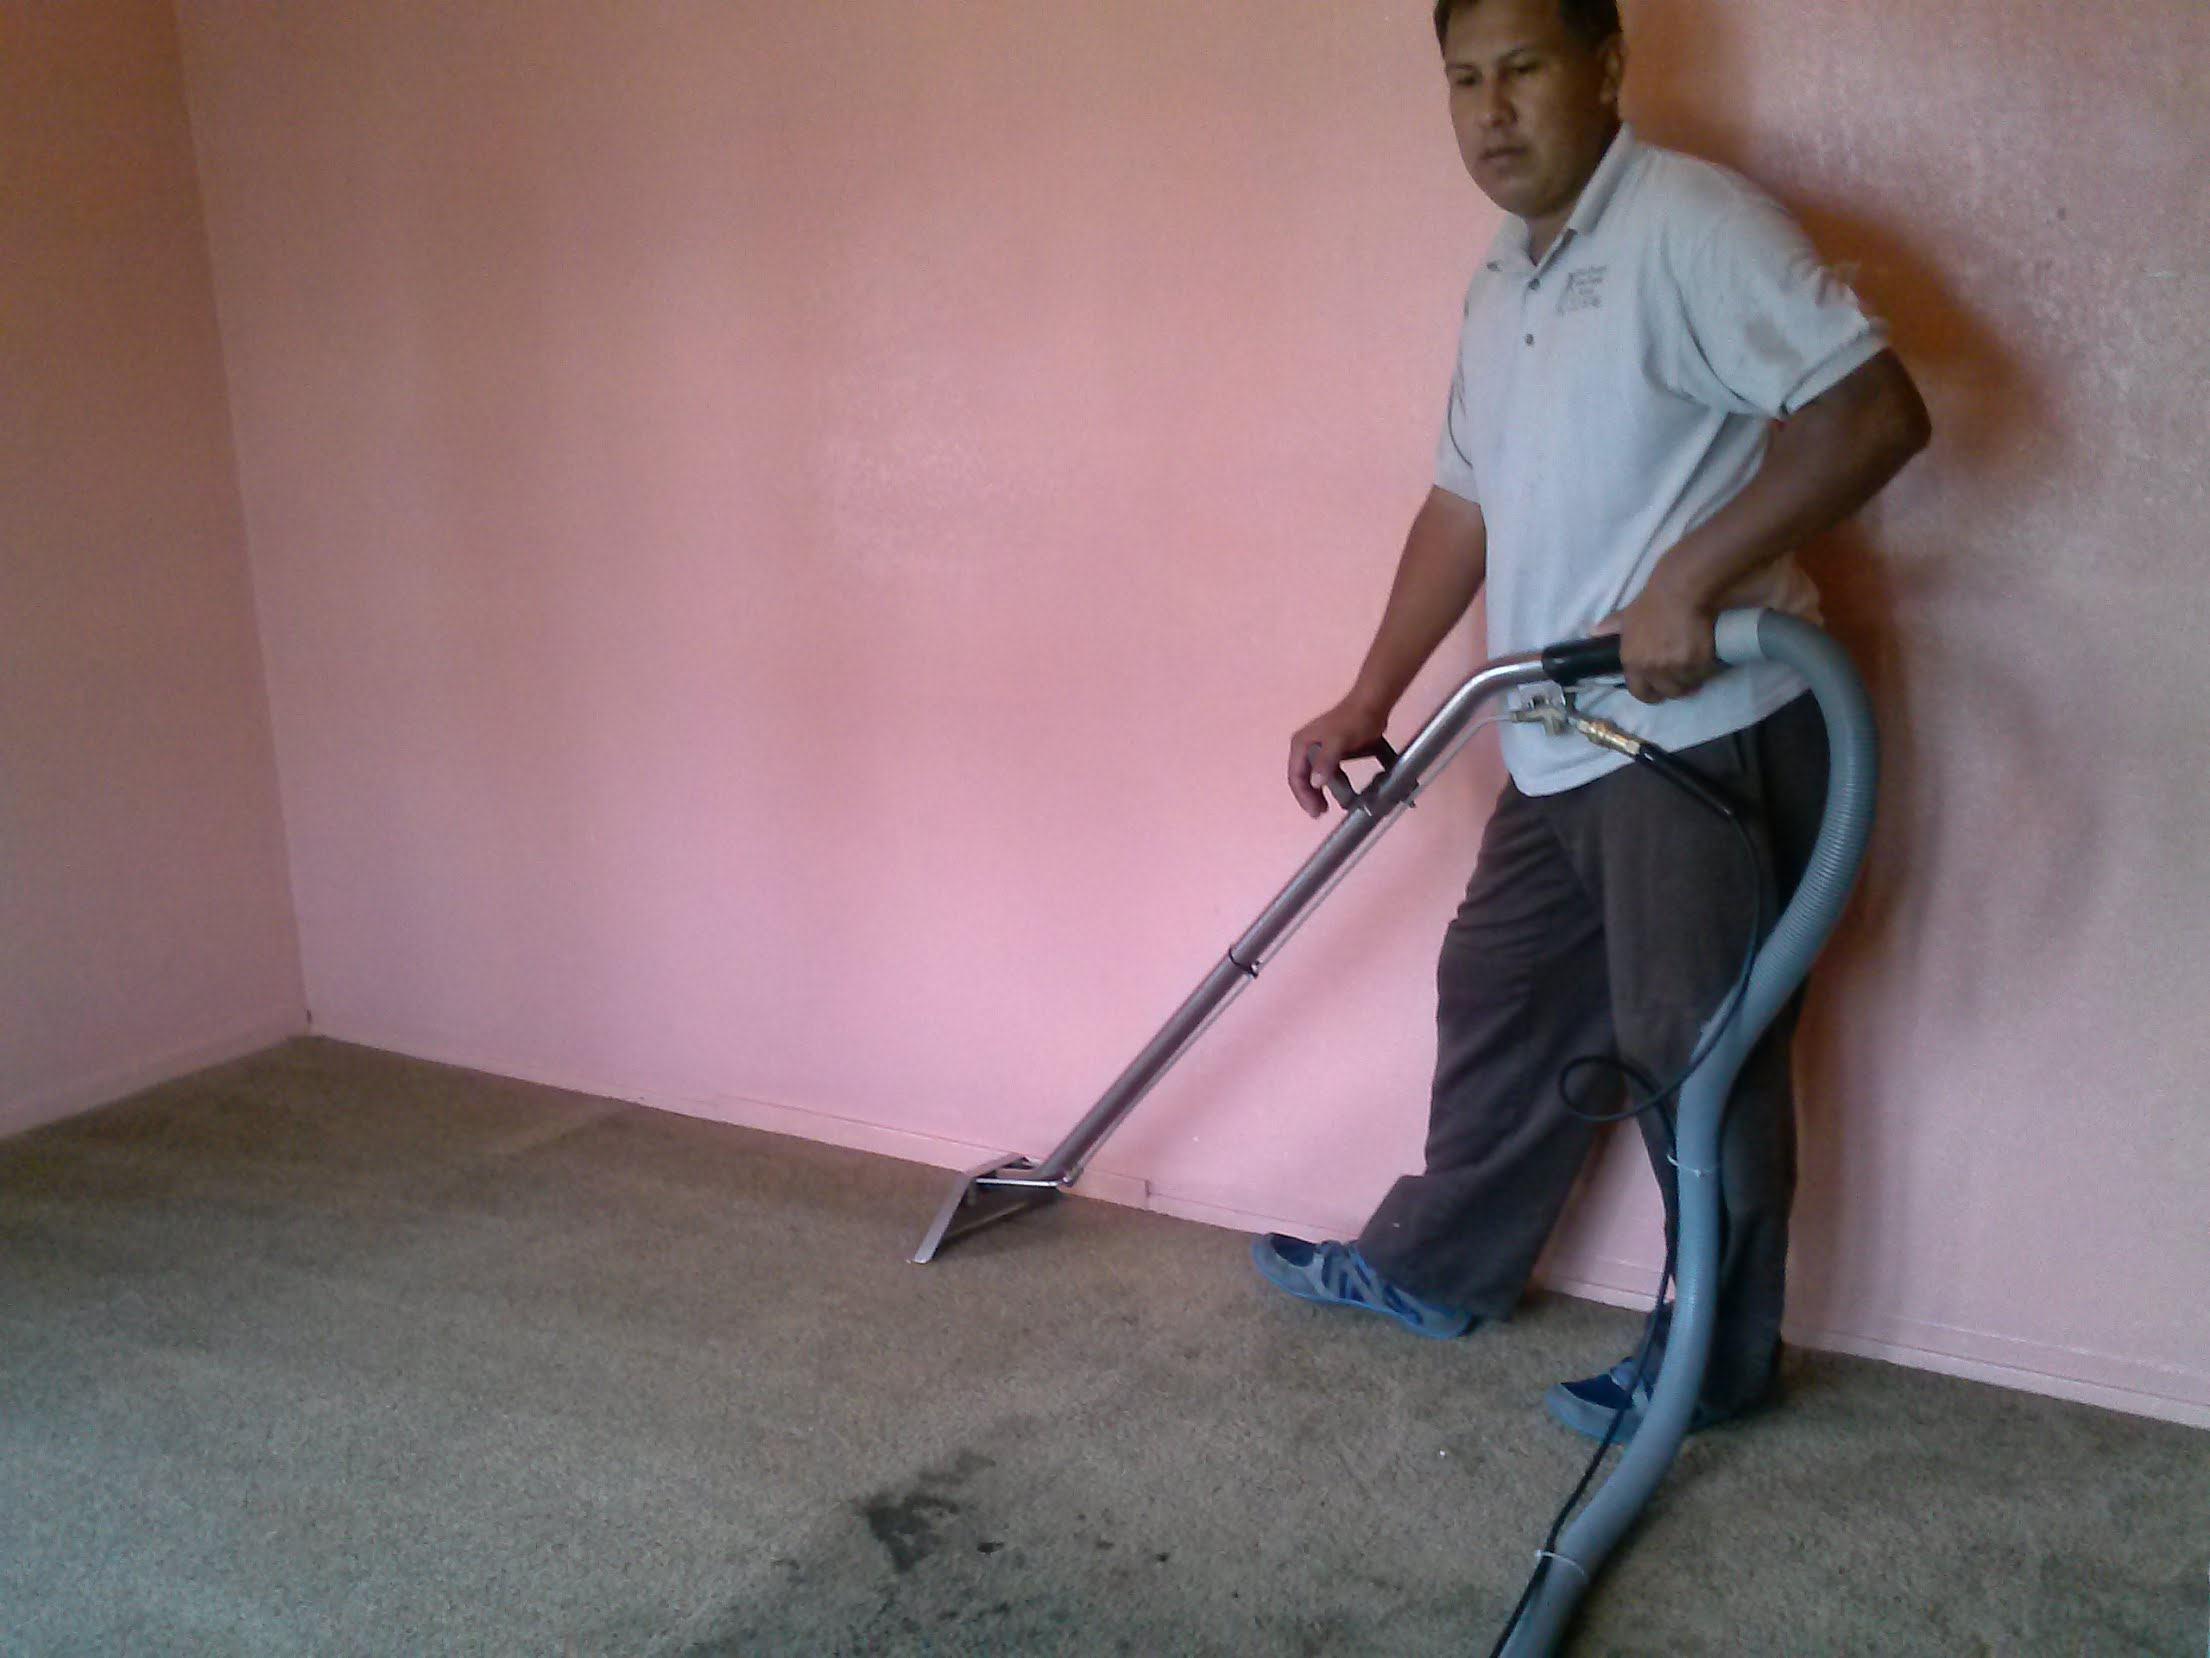 Apartment Cleaning Services Long Beach Ca